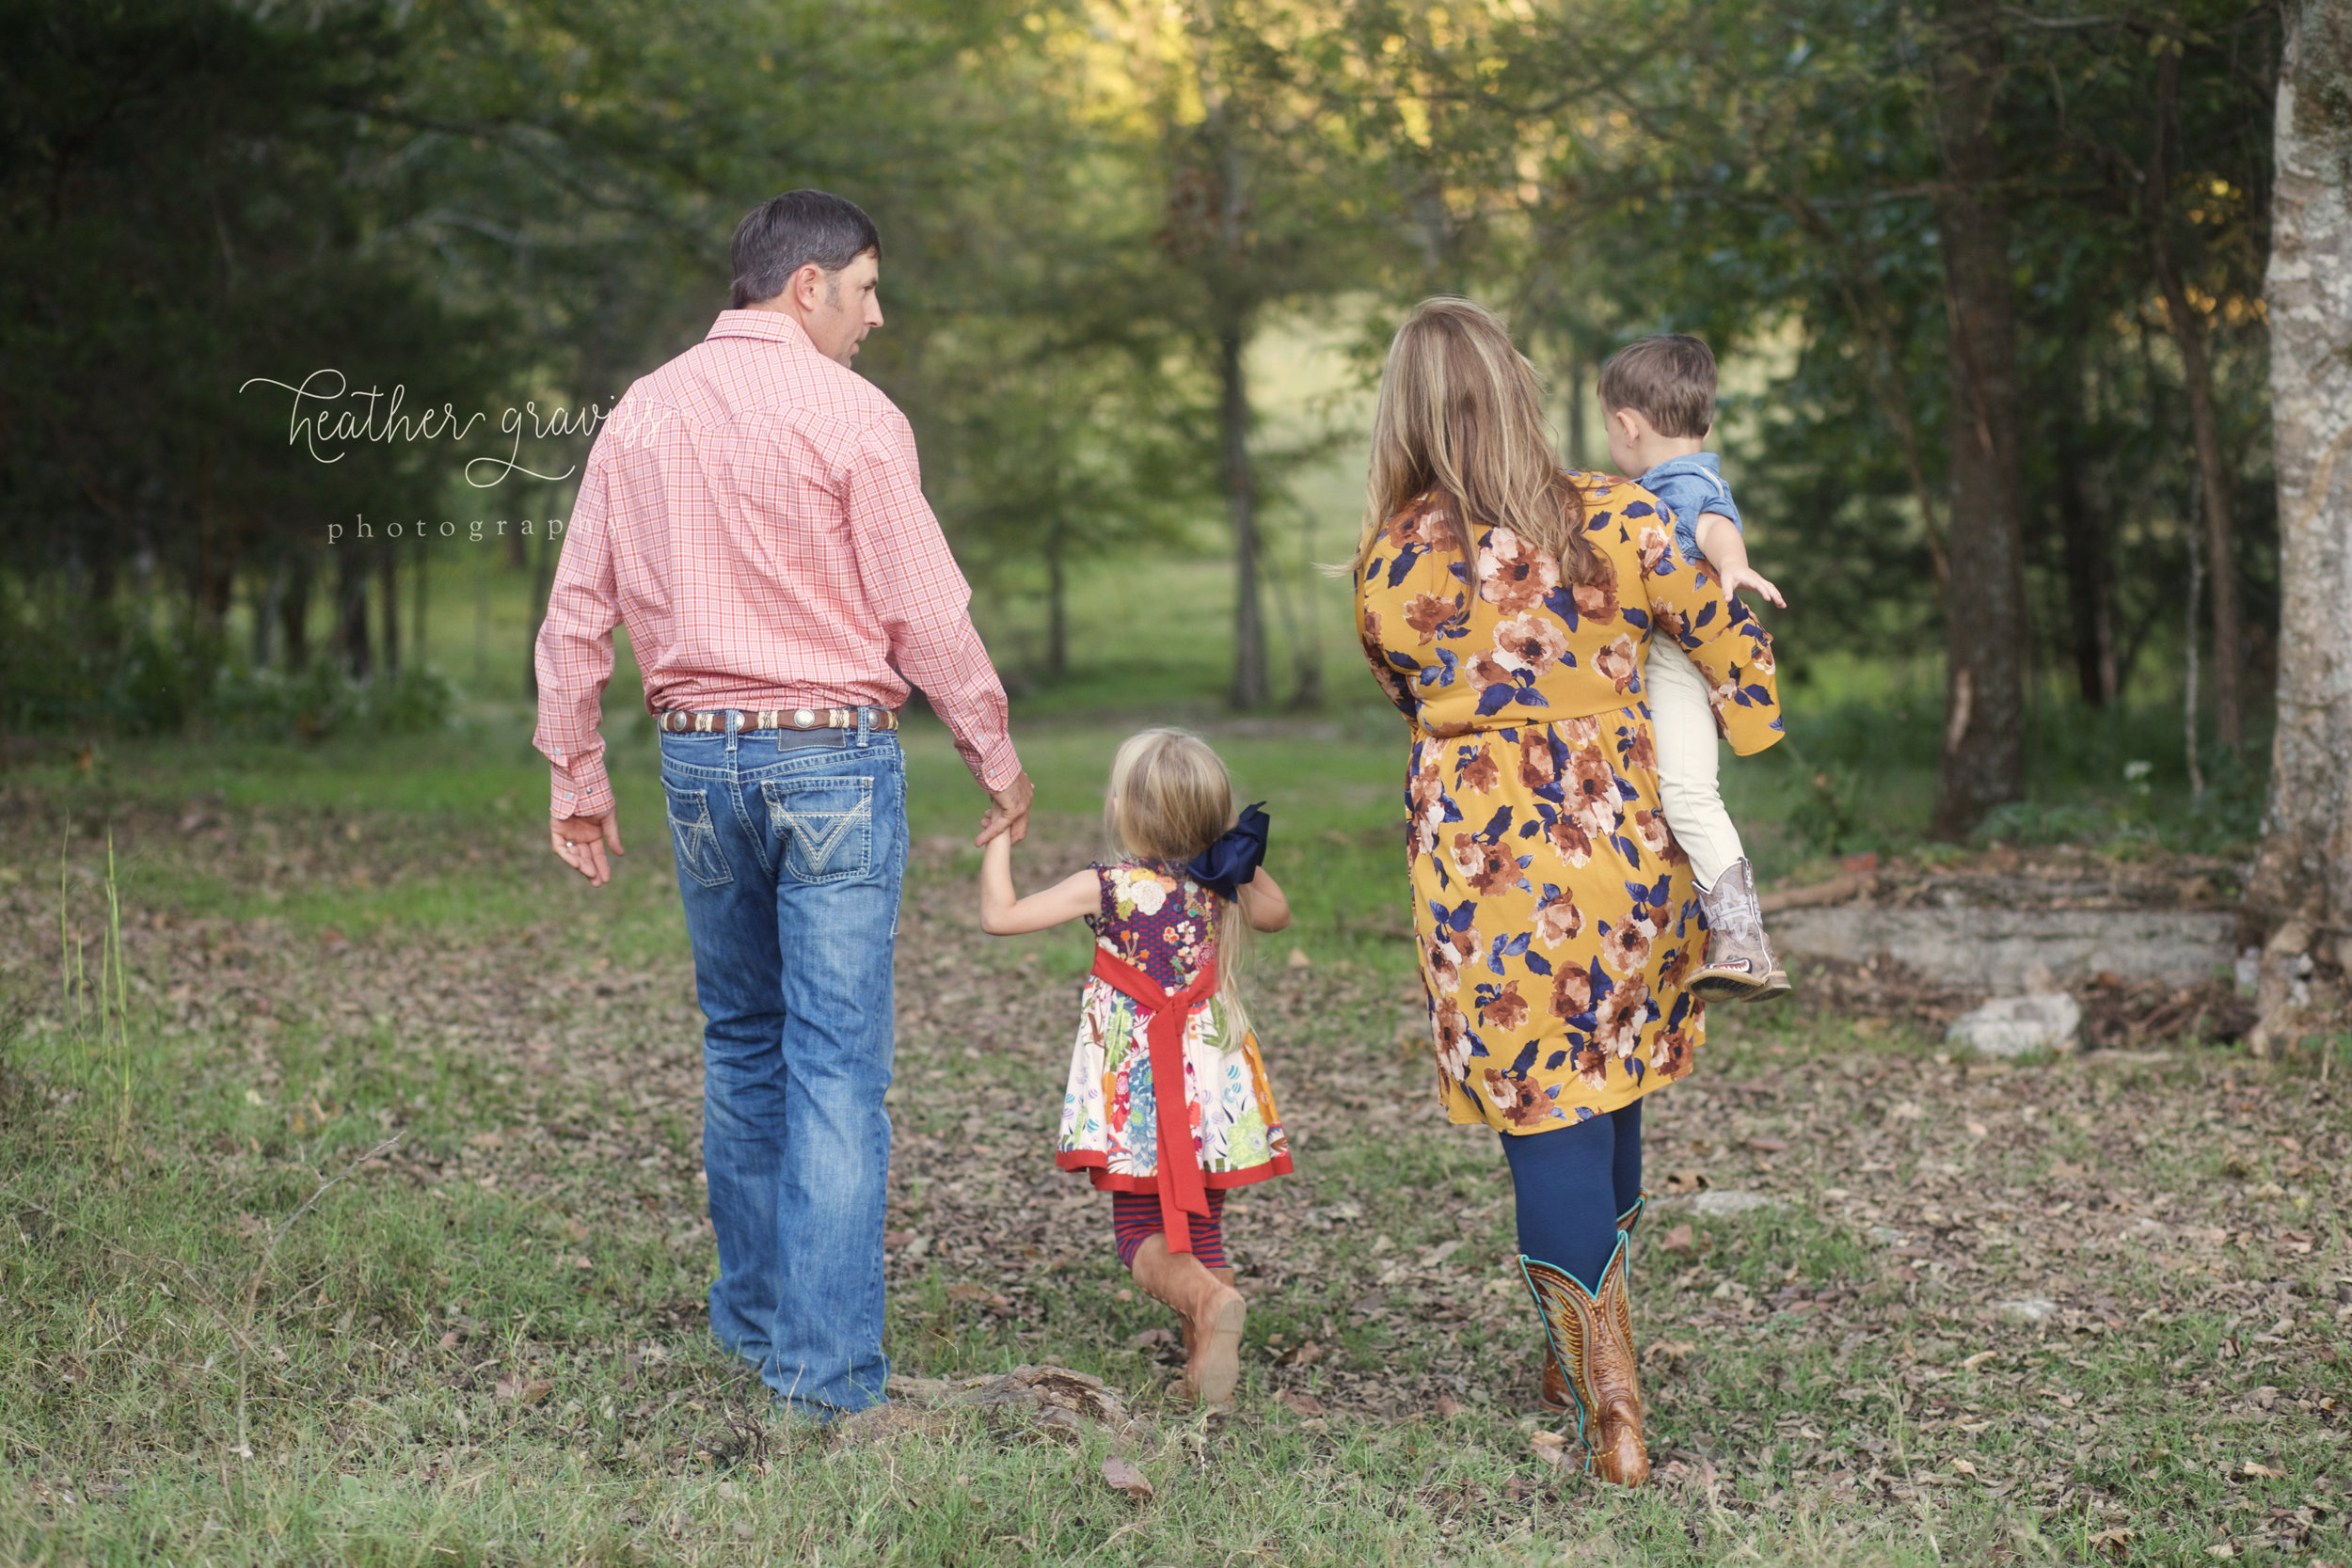 nashville middle tn family photographer 265.jpg